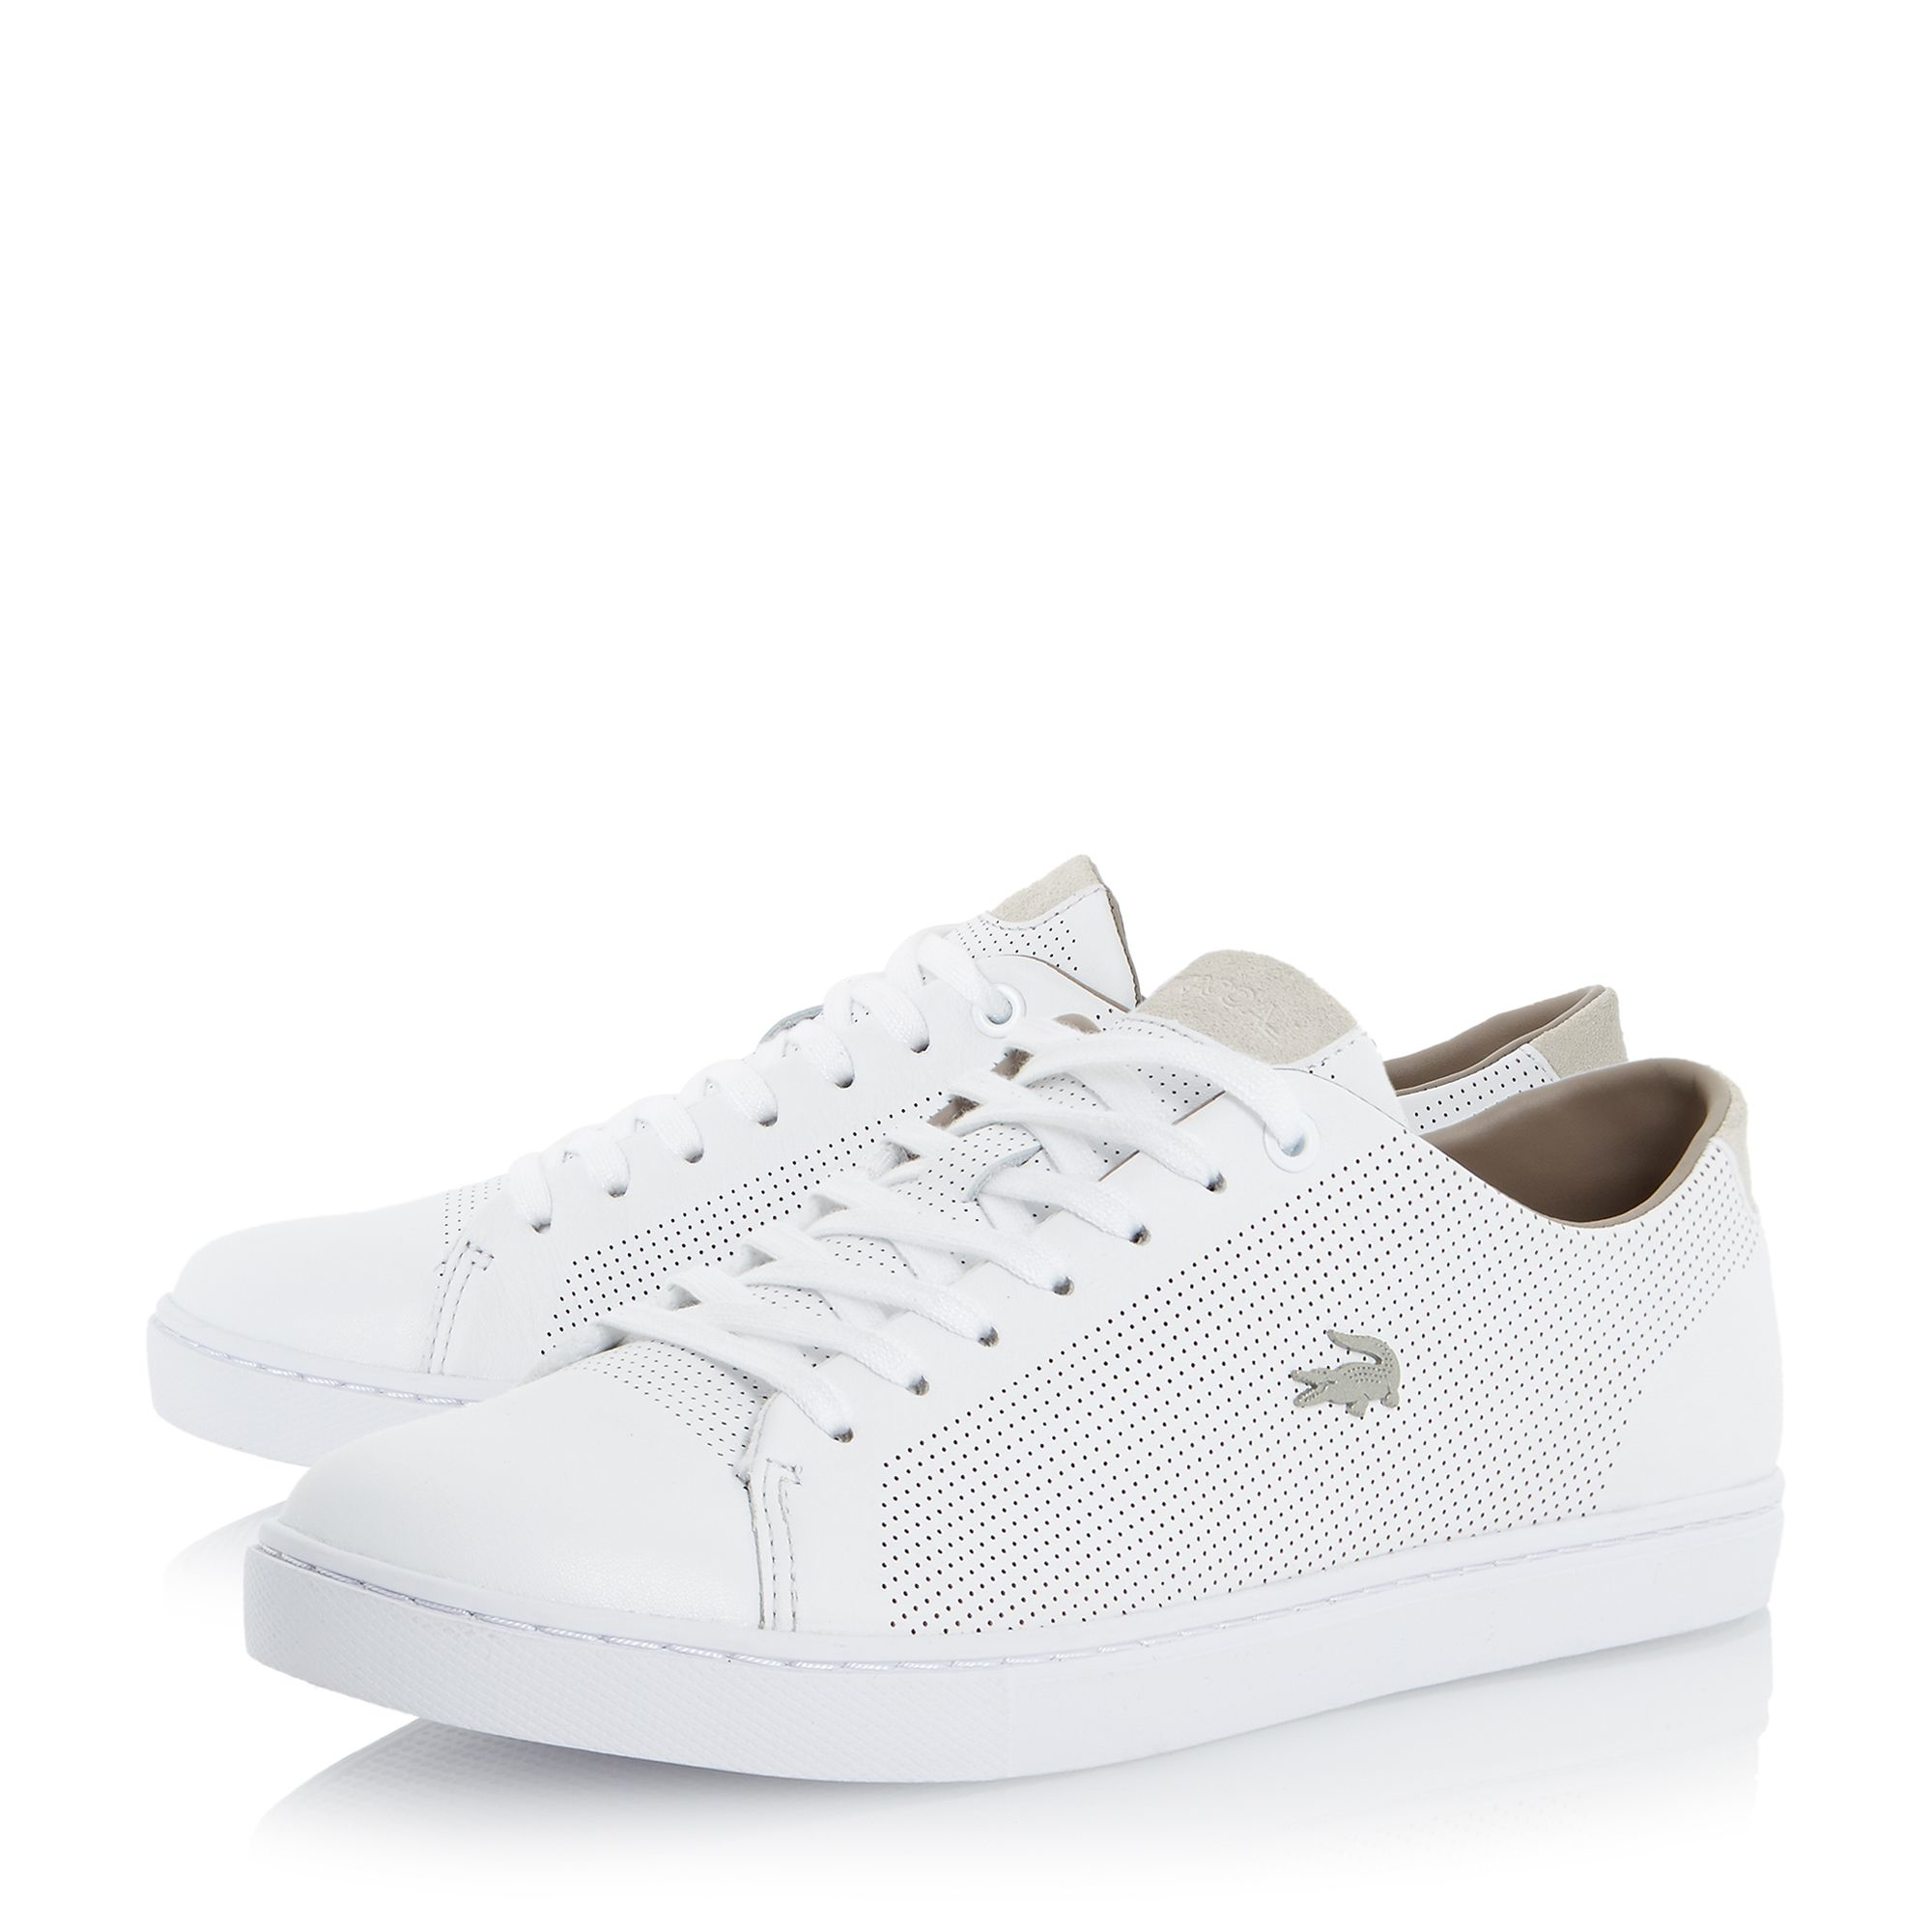 316febc01eb0f Lyst - Lacoste Showcourt Cupsole Lace Trainers in White for Men